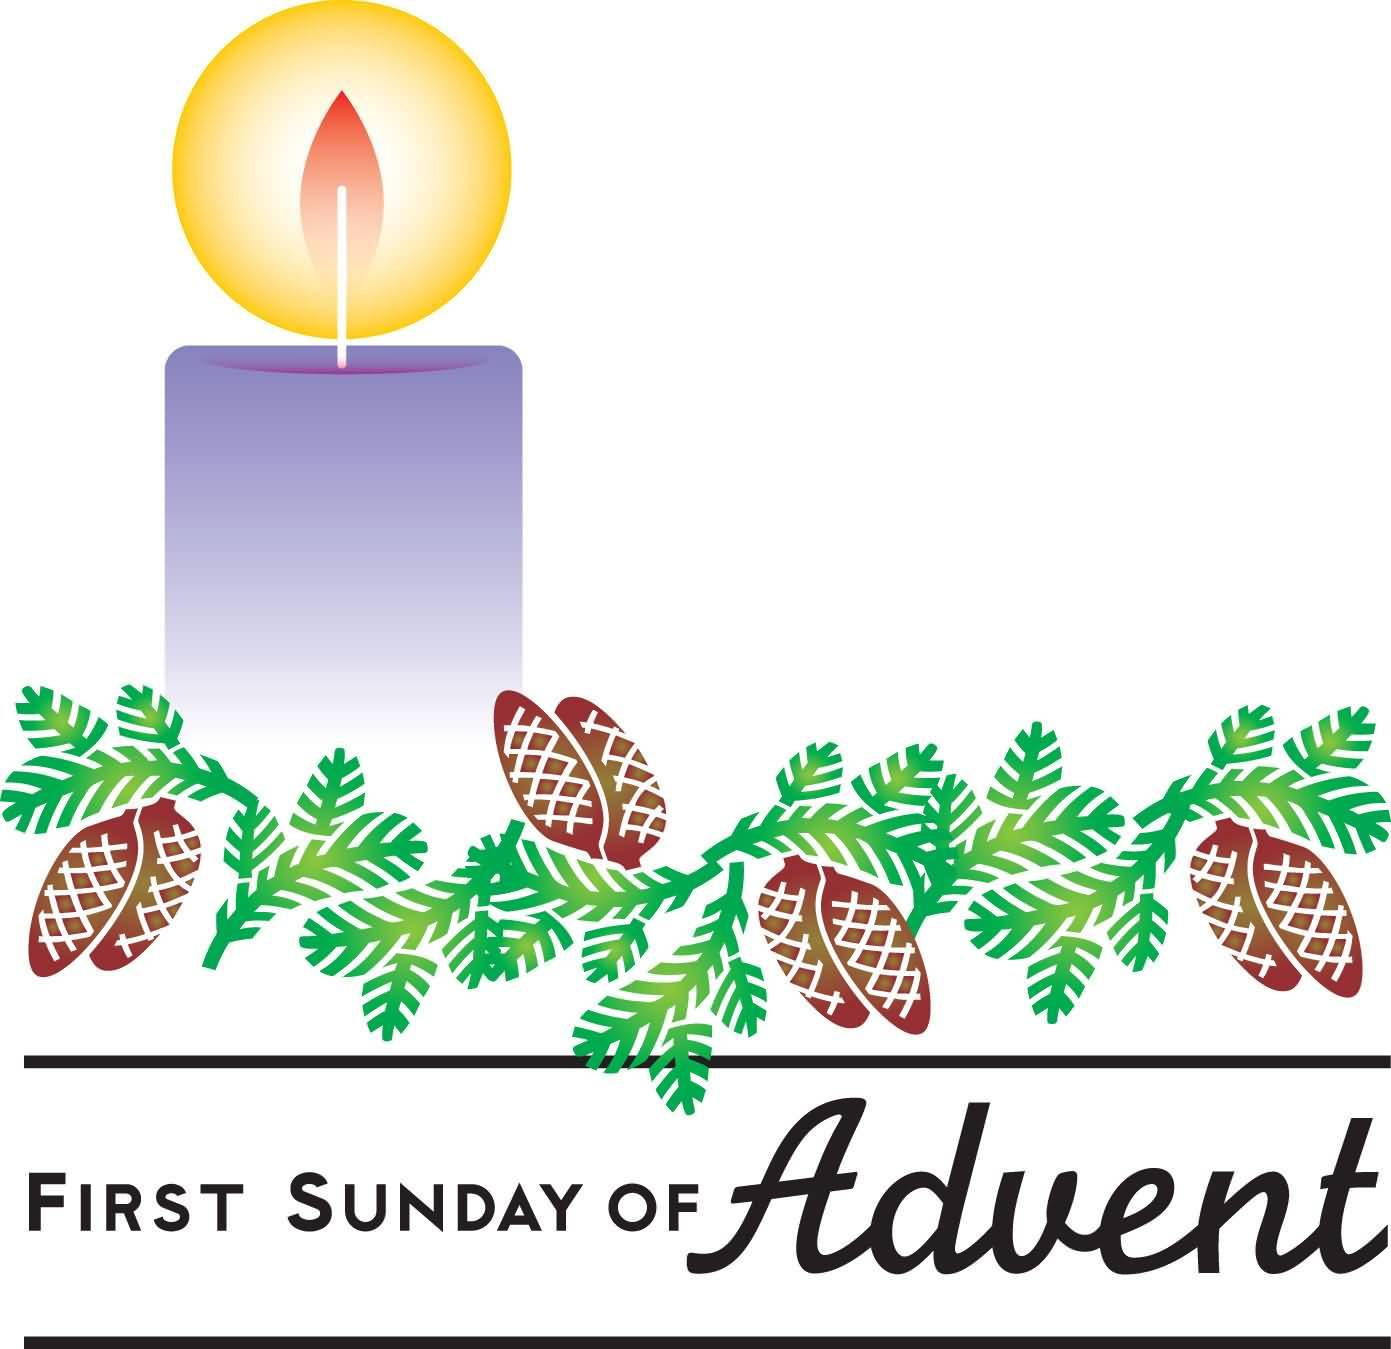 4th sunday of advent clipart 4 » Clipart Portal.